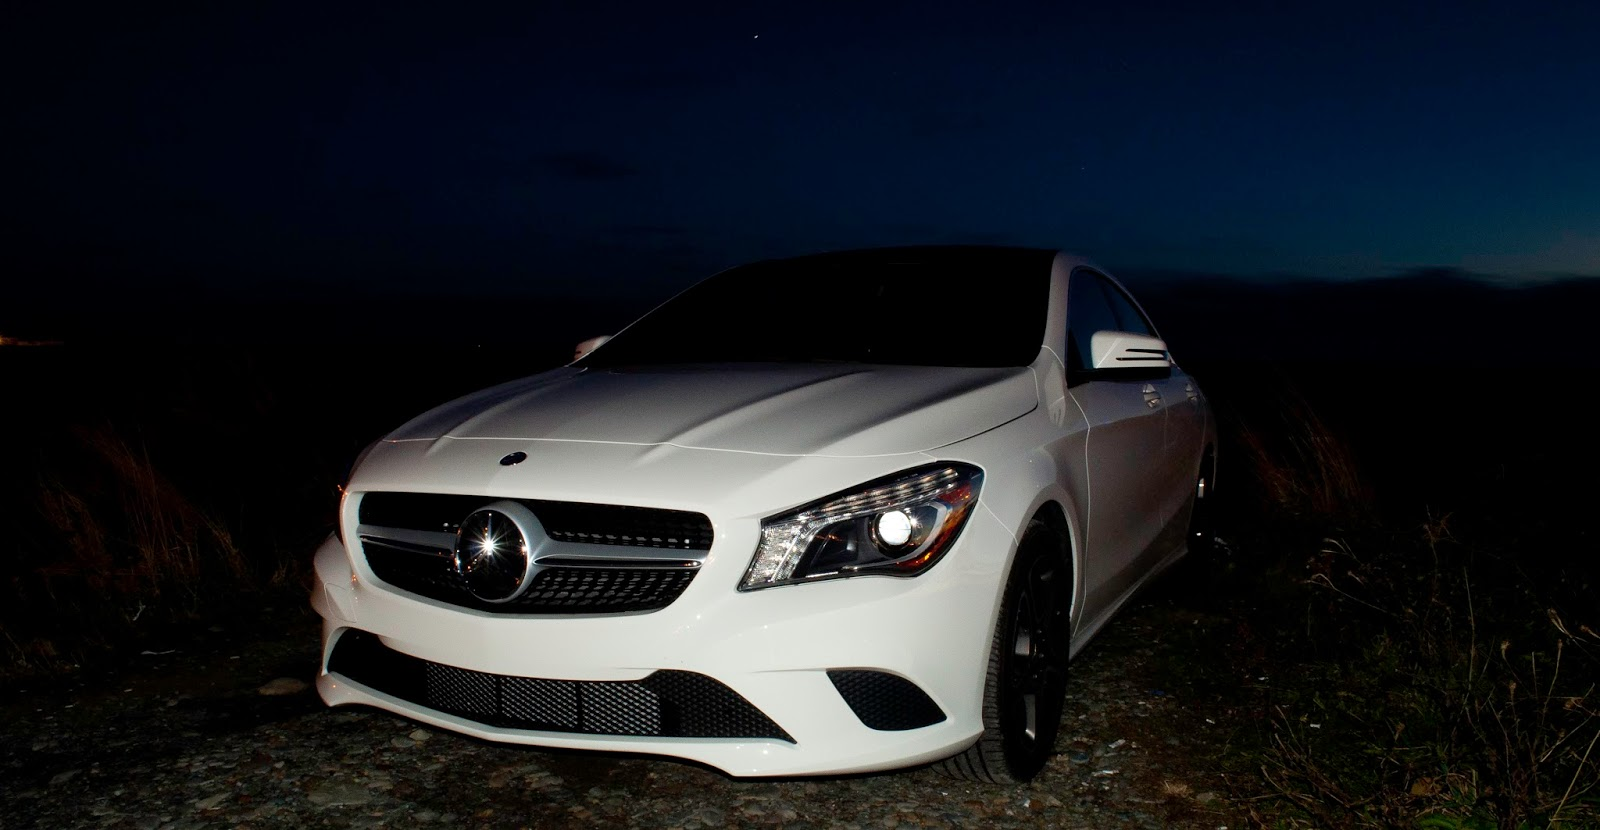 2014 mercedes benz cla250 review at what cost style gcbc for Mercedes benz cla250 review